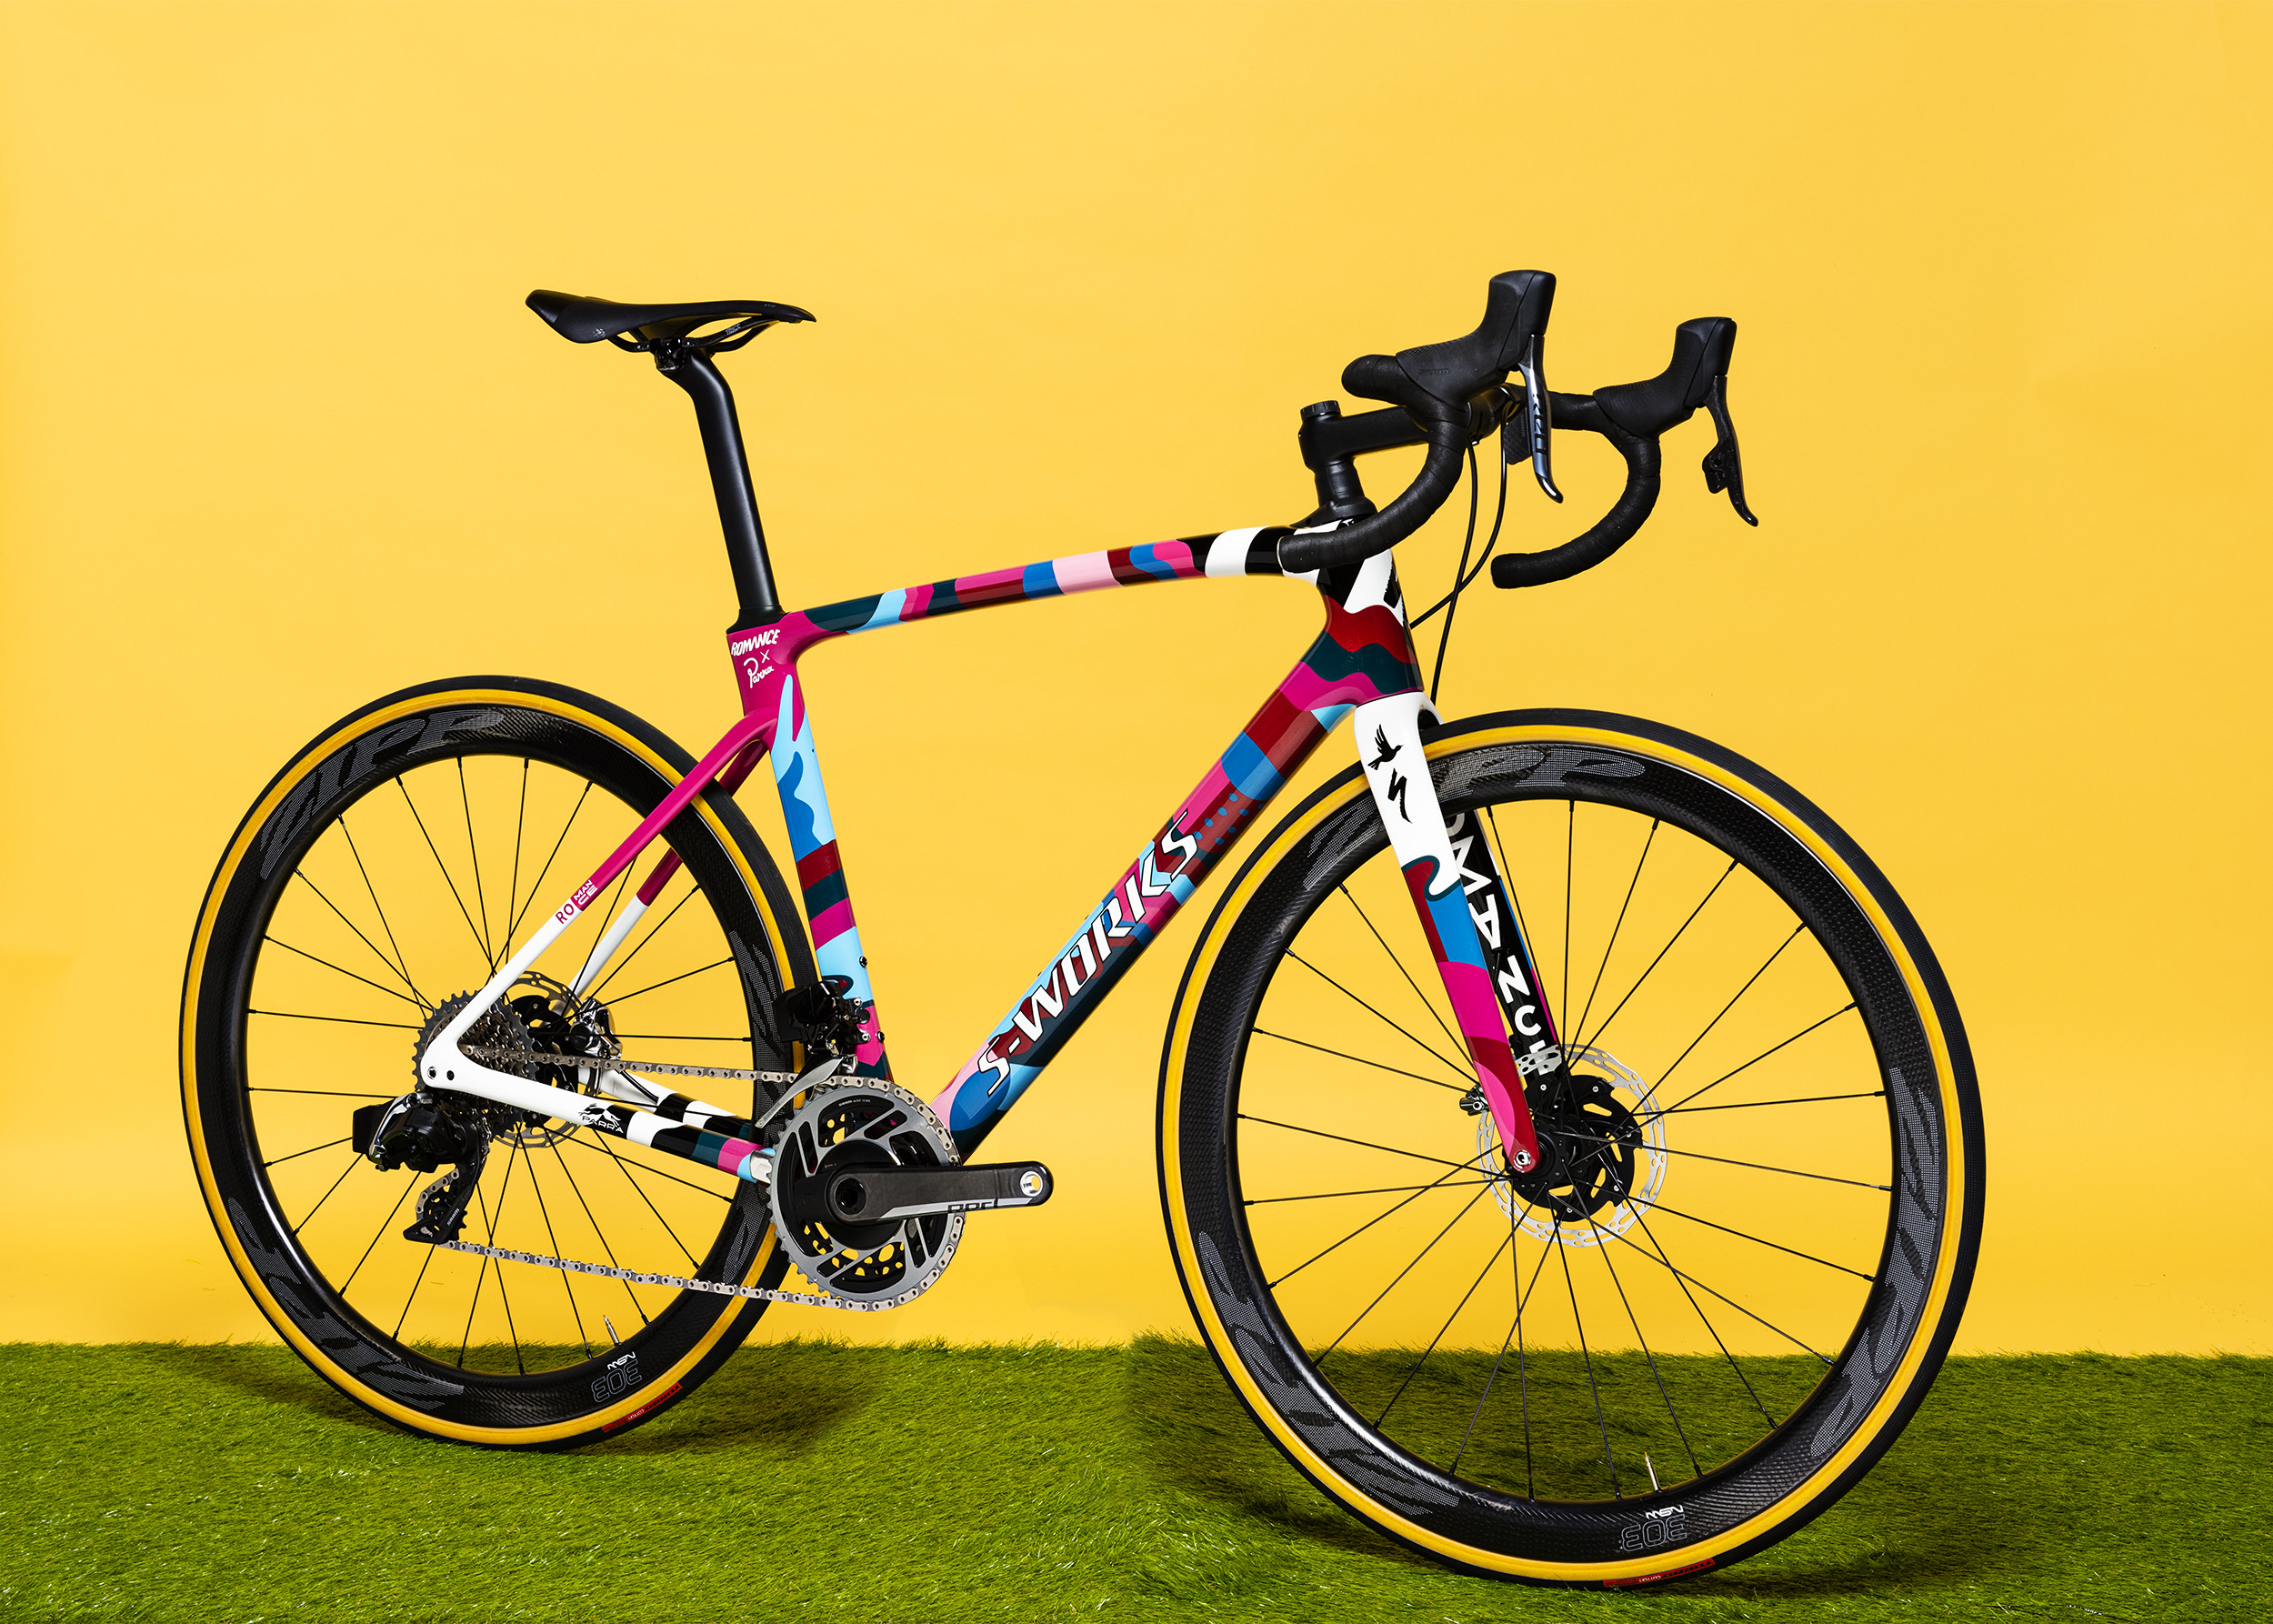 2019_06_14_romance_parra_bike_yellow_0058.jpg